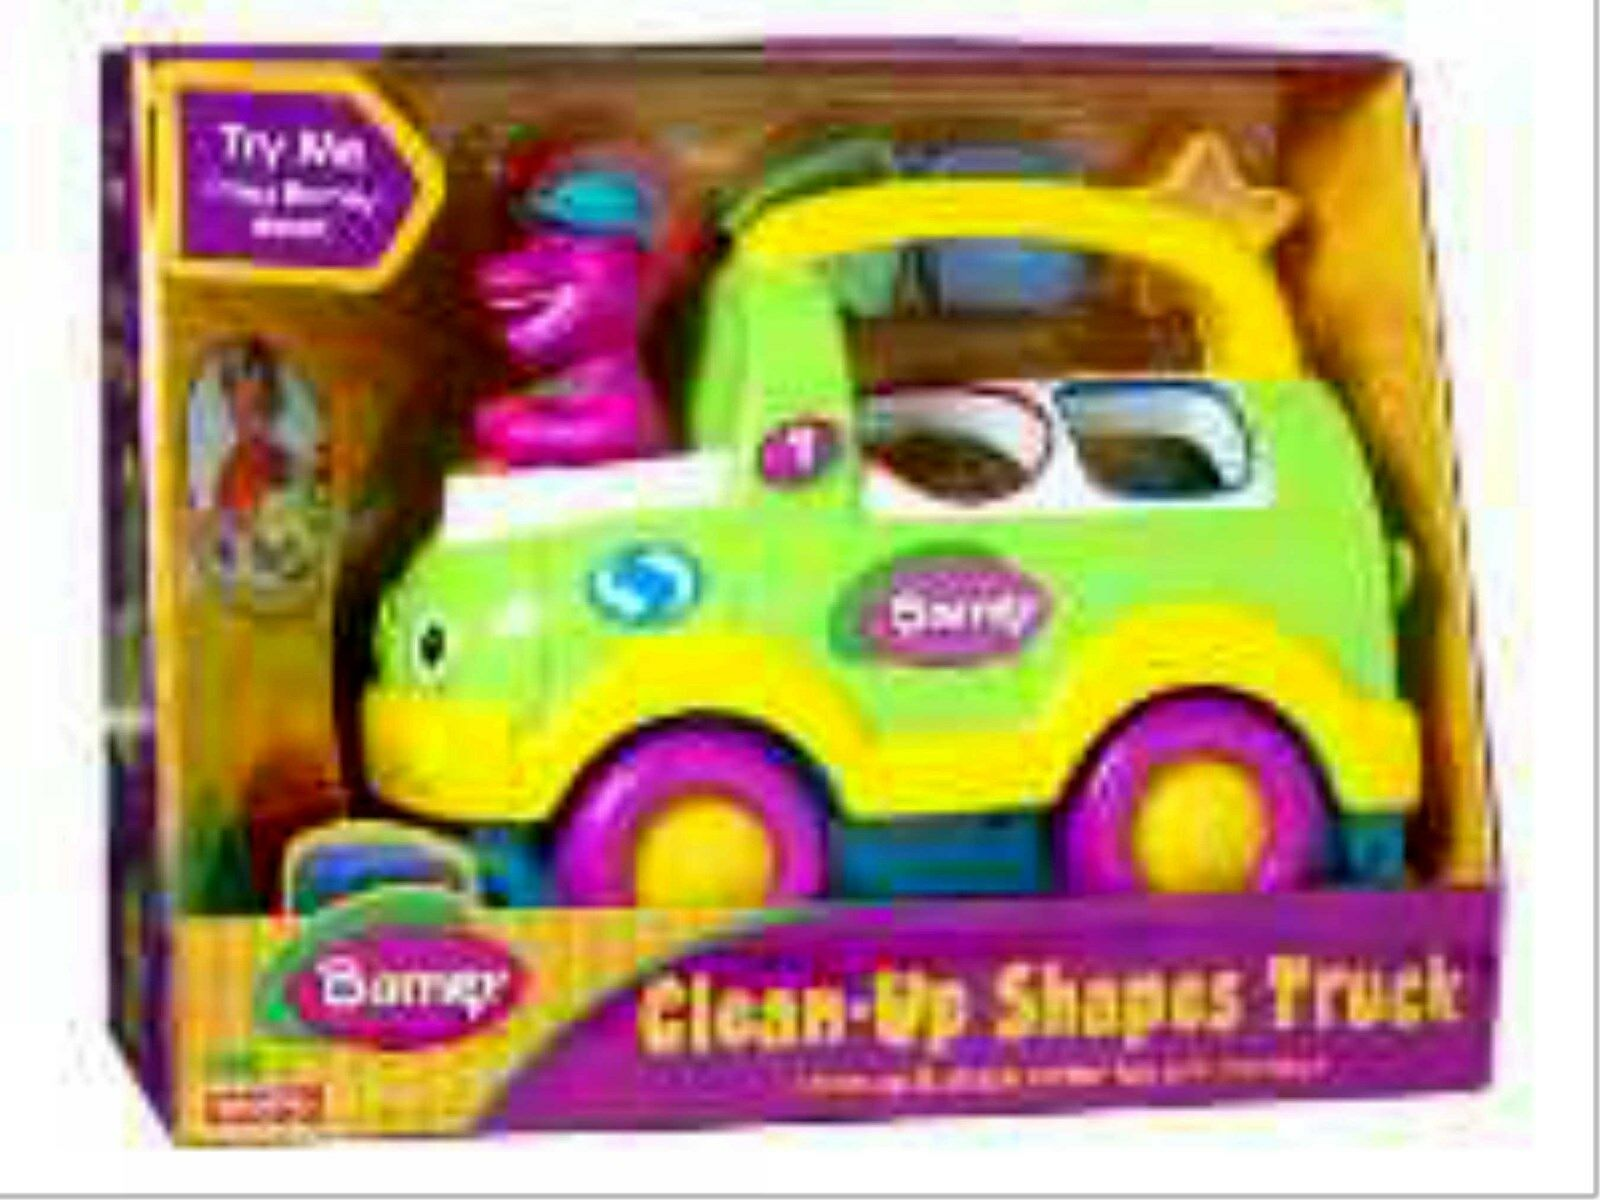 Barney Clean-up Shapes 10  Truck Electronic Talking New Fisher-Price 1992